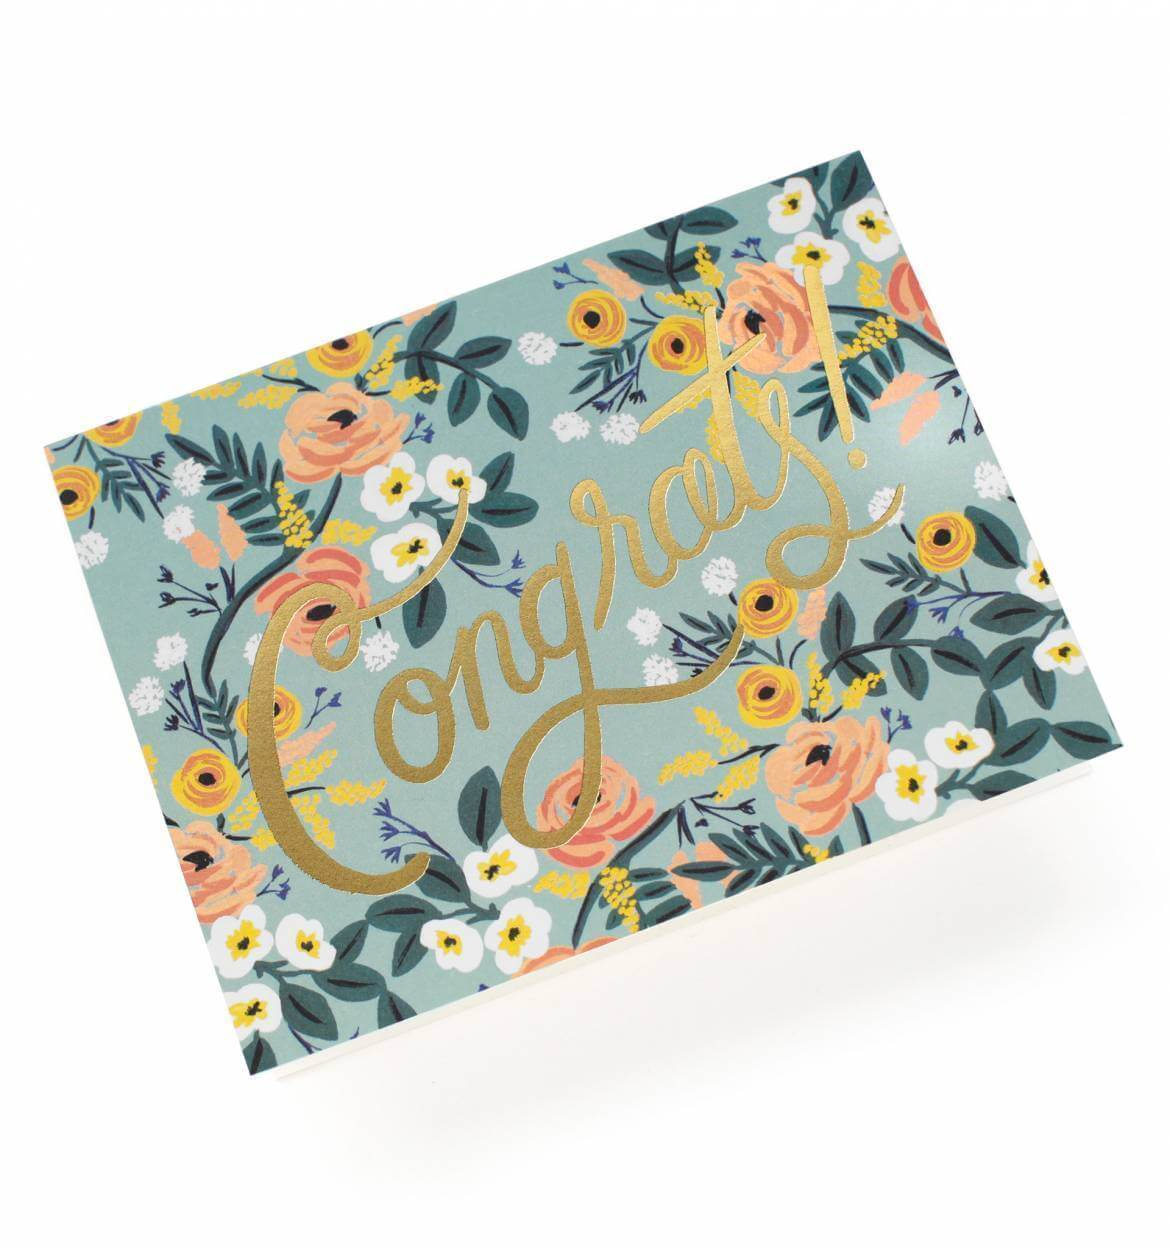 Blue Meadow Congrats Card, Gifts - Rifle - {a} haley boutique